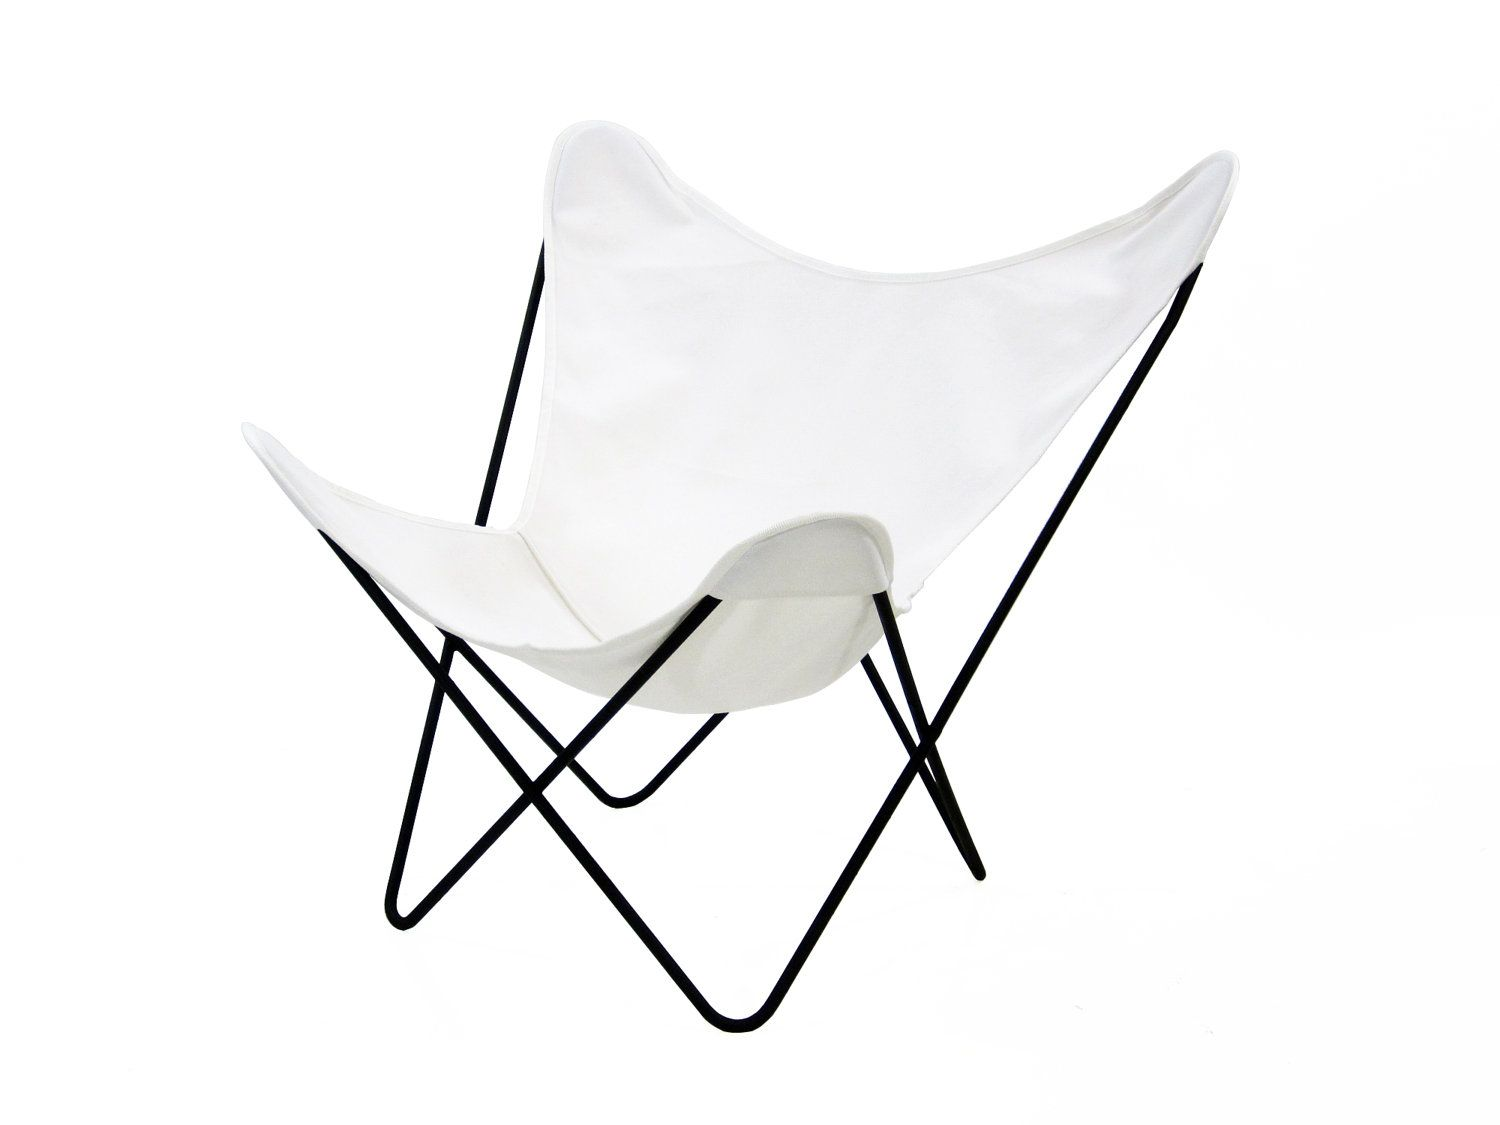 Canvas Sling Chair Vintage Knoll Hardoy Bkf Butterfly Chair With White Canvas